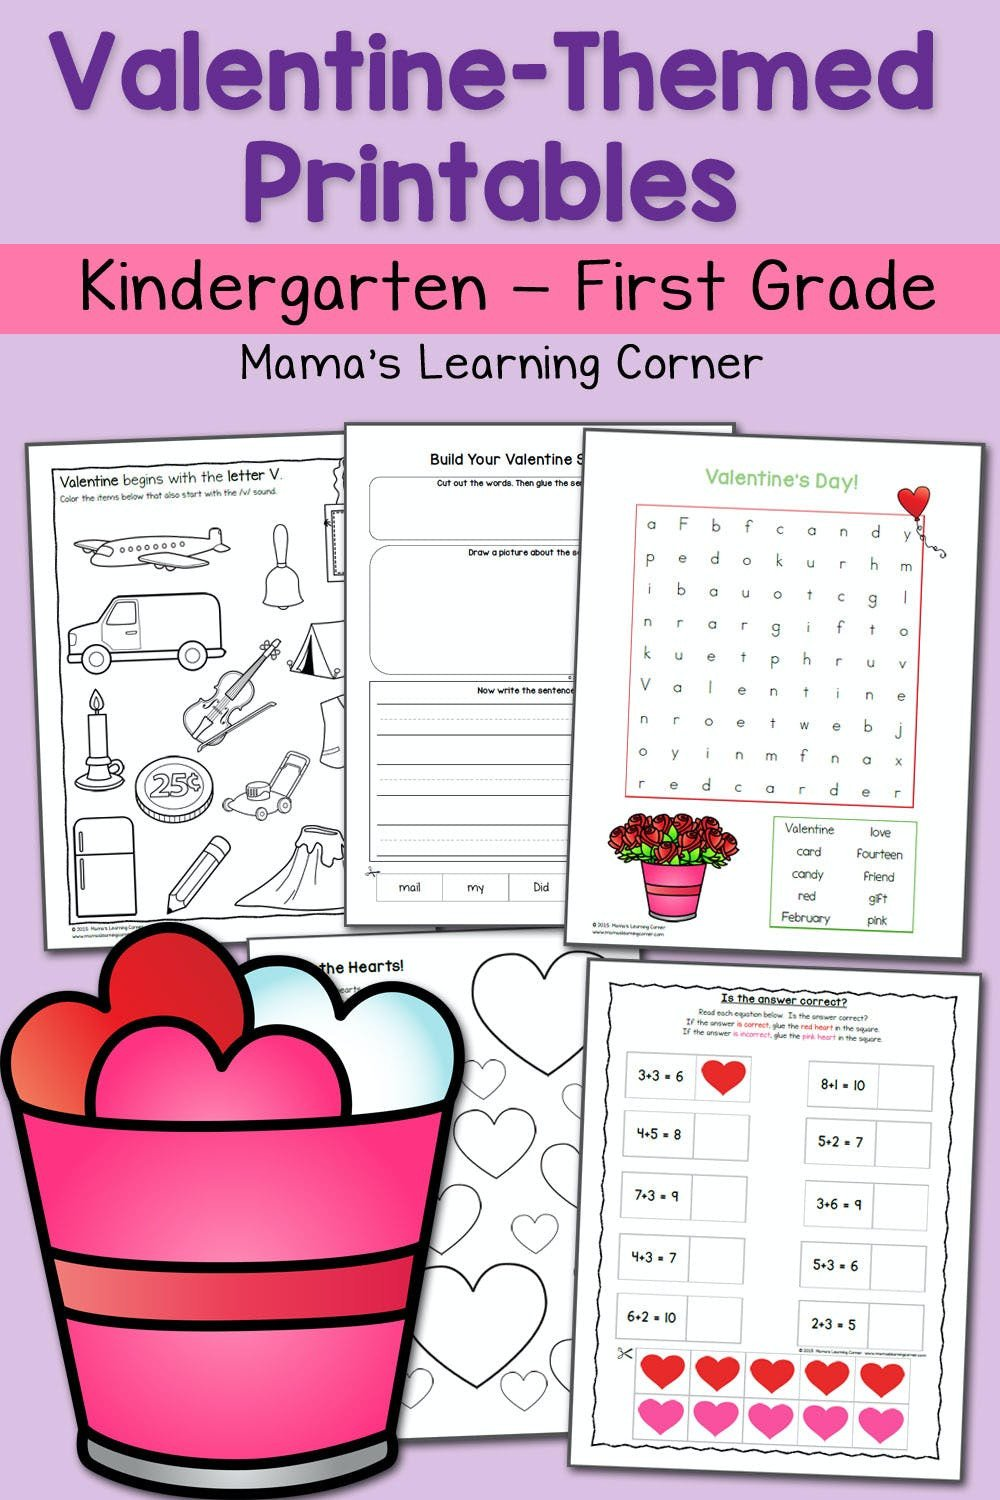 Valentines Day Worksheets for Kindergarten Valentine Worksheets for Kindergarten and First Grade